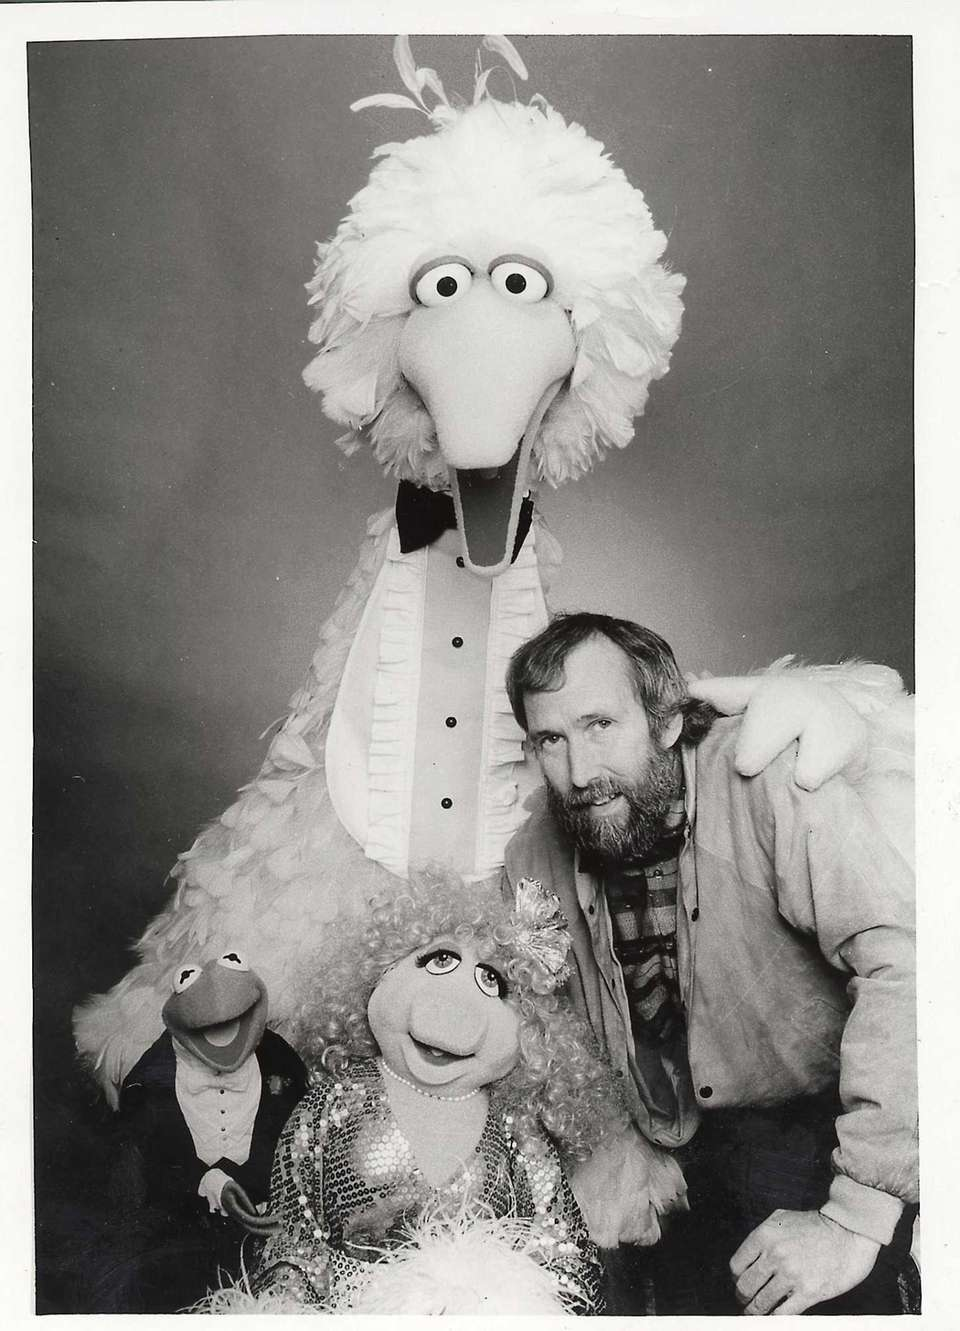 Jim Henson and some of his famous creations